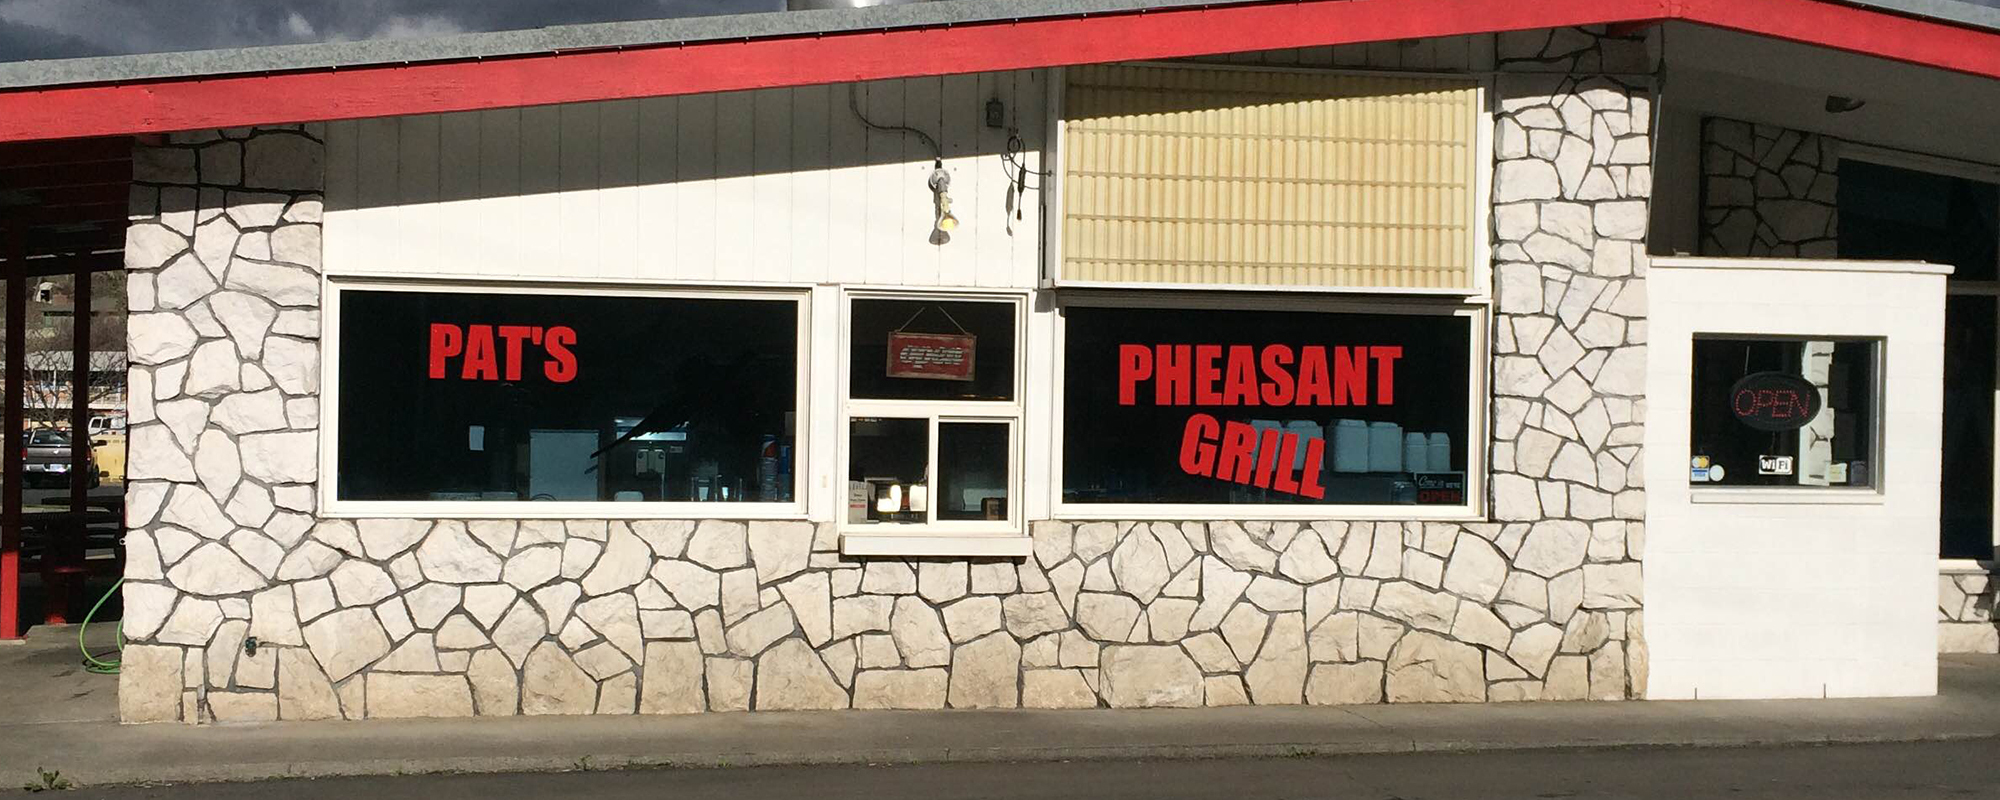 Exterior view of the Pat's Pheasant Grill restaurant in Arlington, OR